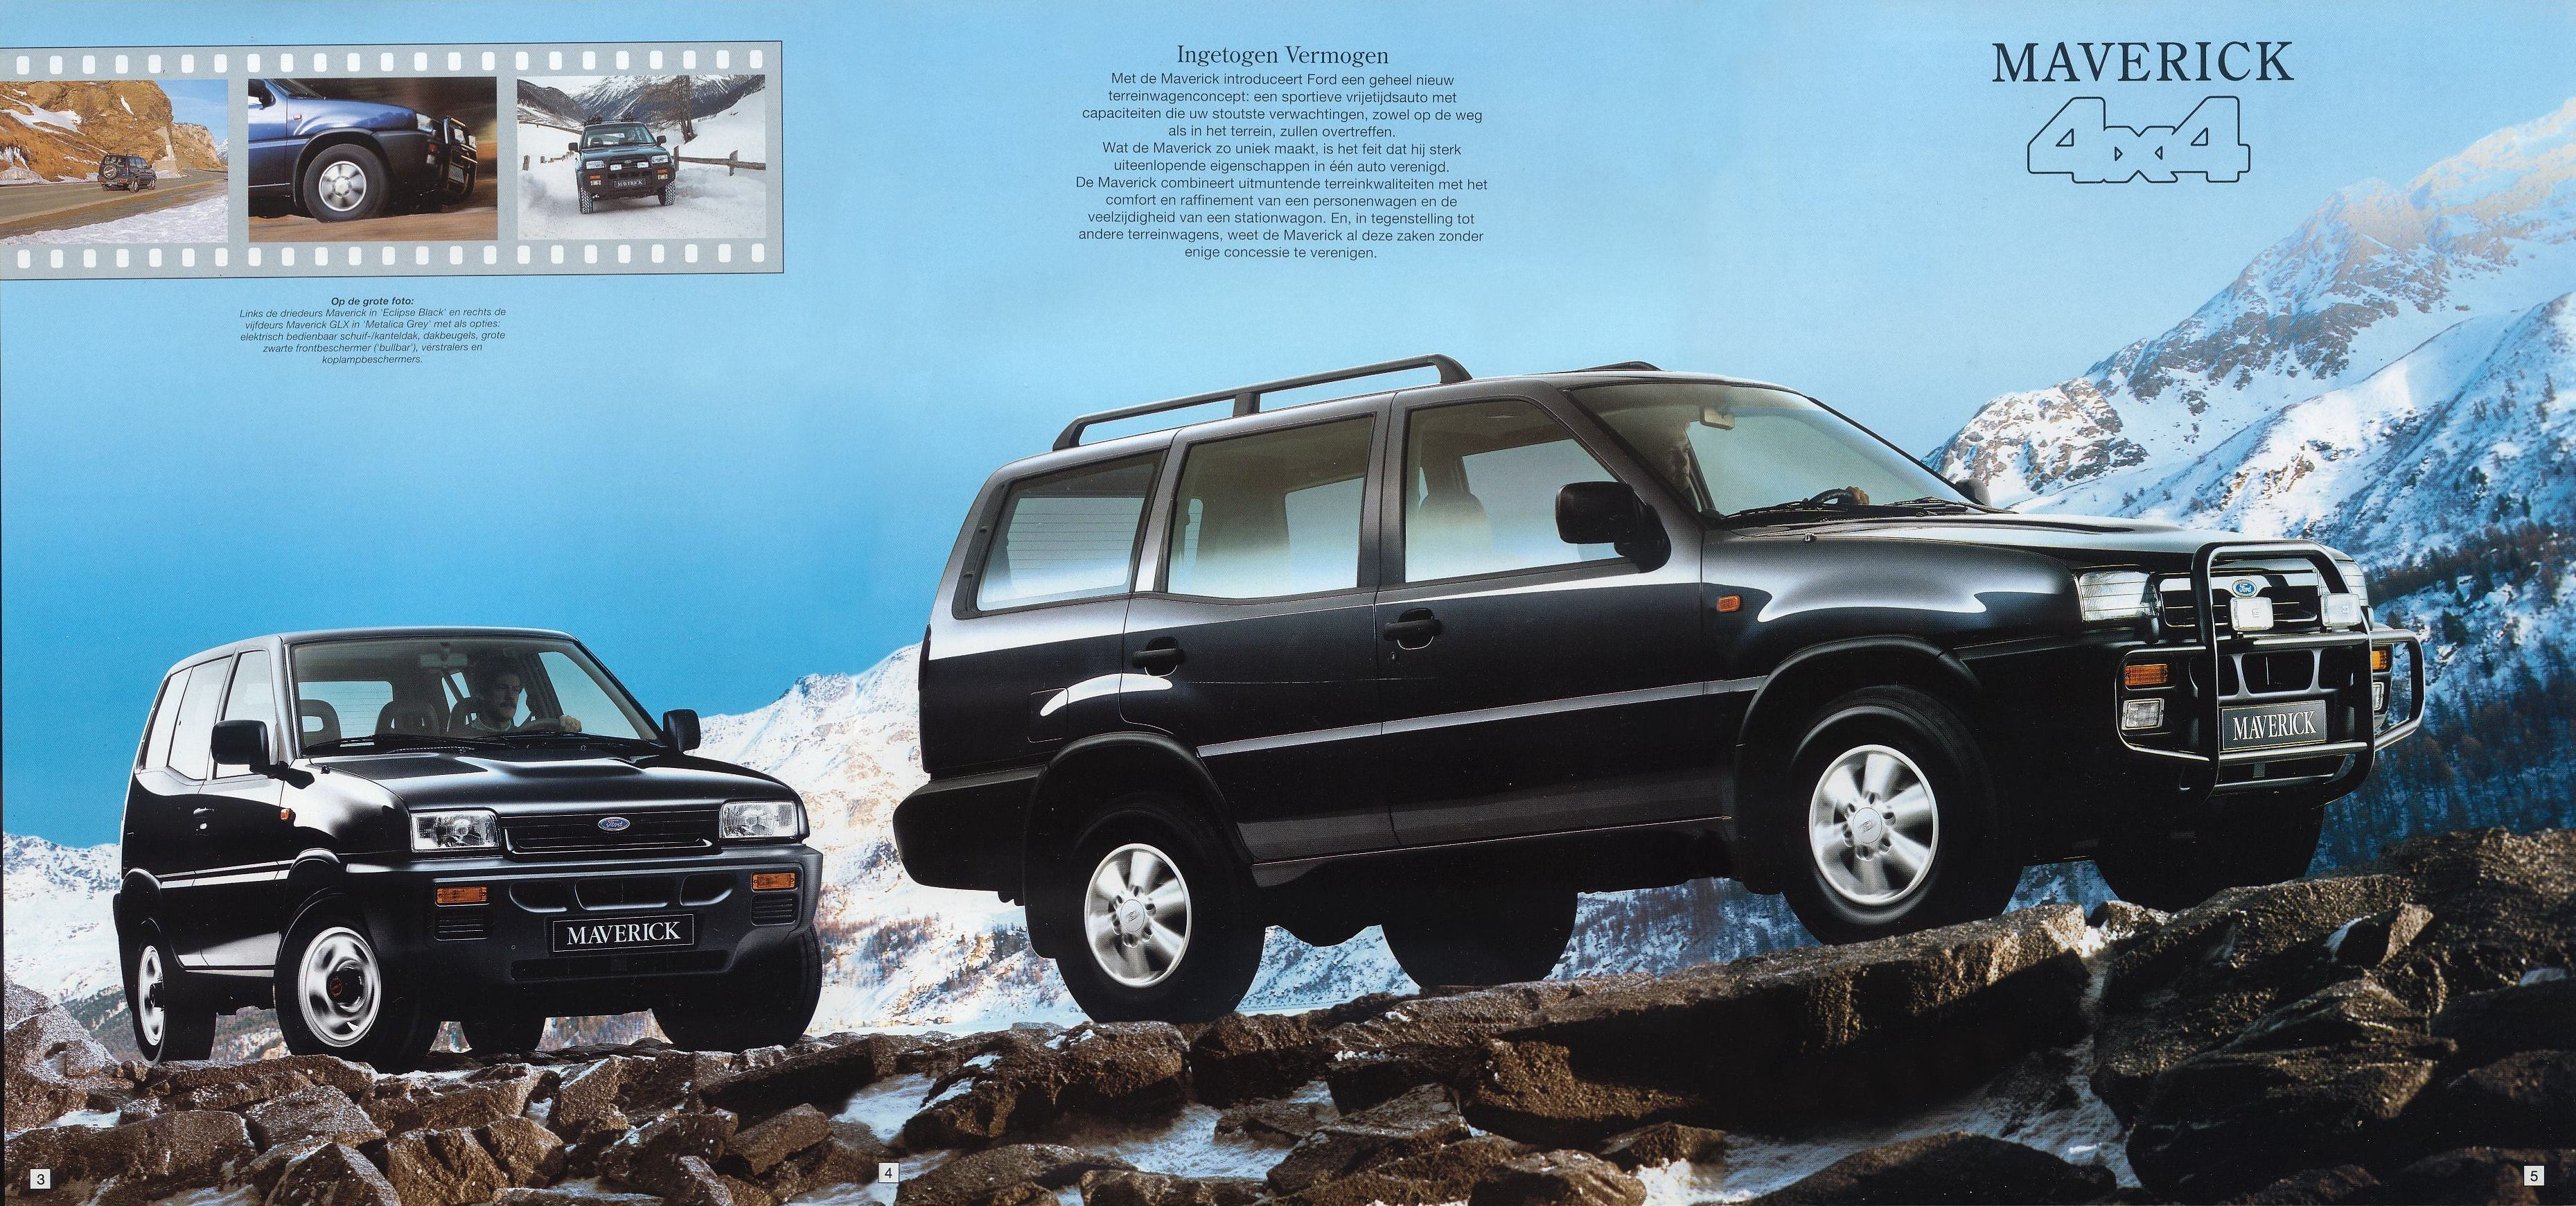 1995 Ford Maverick brochure